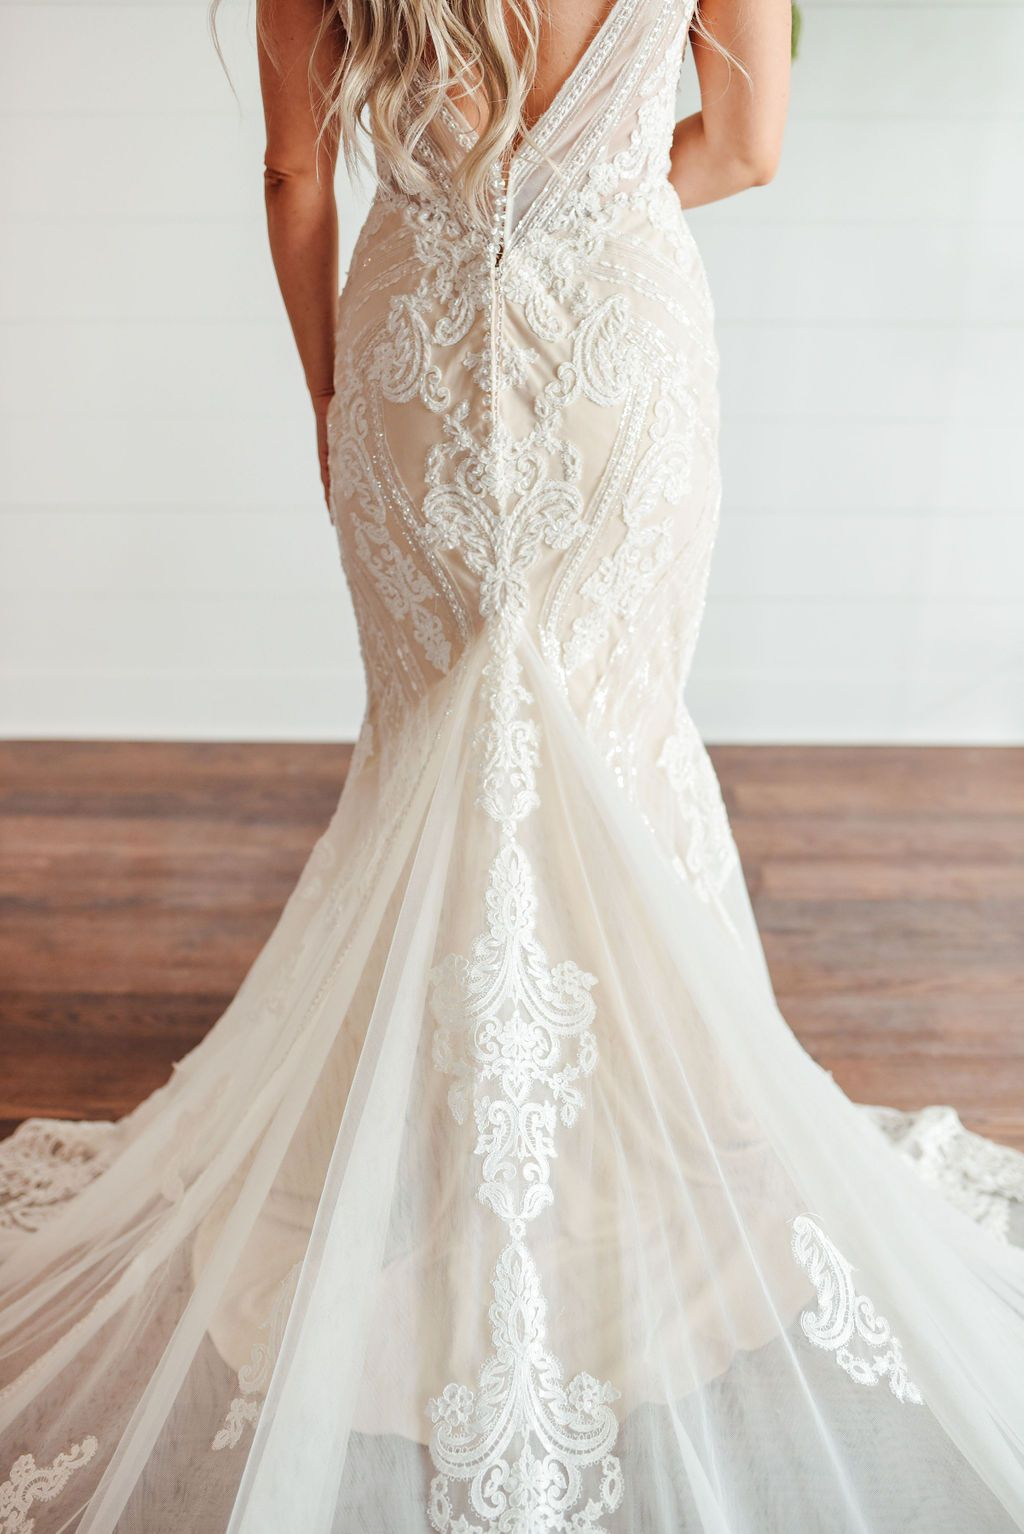 The Wedding Studio In Greenwood Indiana Offers A Unique Variety Of Wedding Dresses We Offe Affordable Bridal Gowns Wedding Dresses Martina Liana Wedding Dress